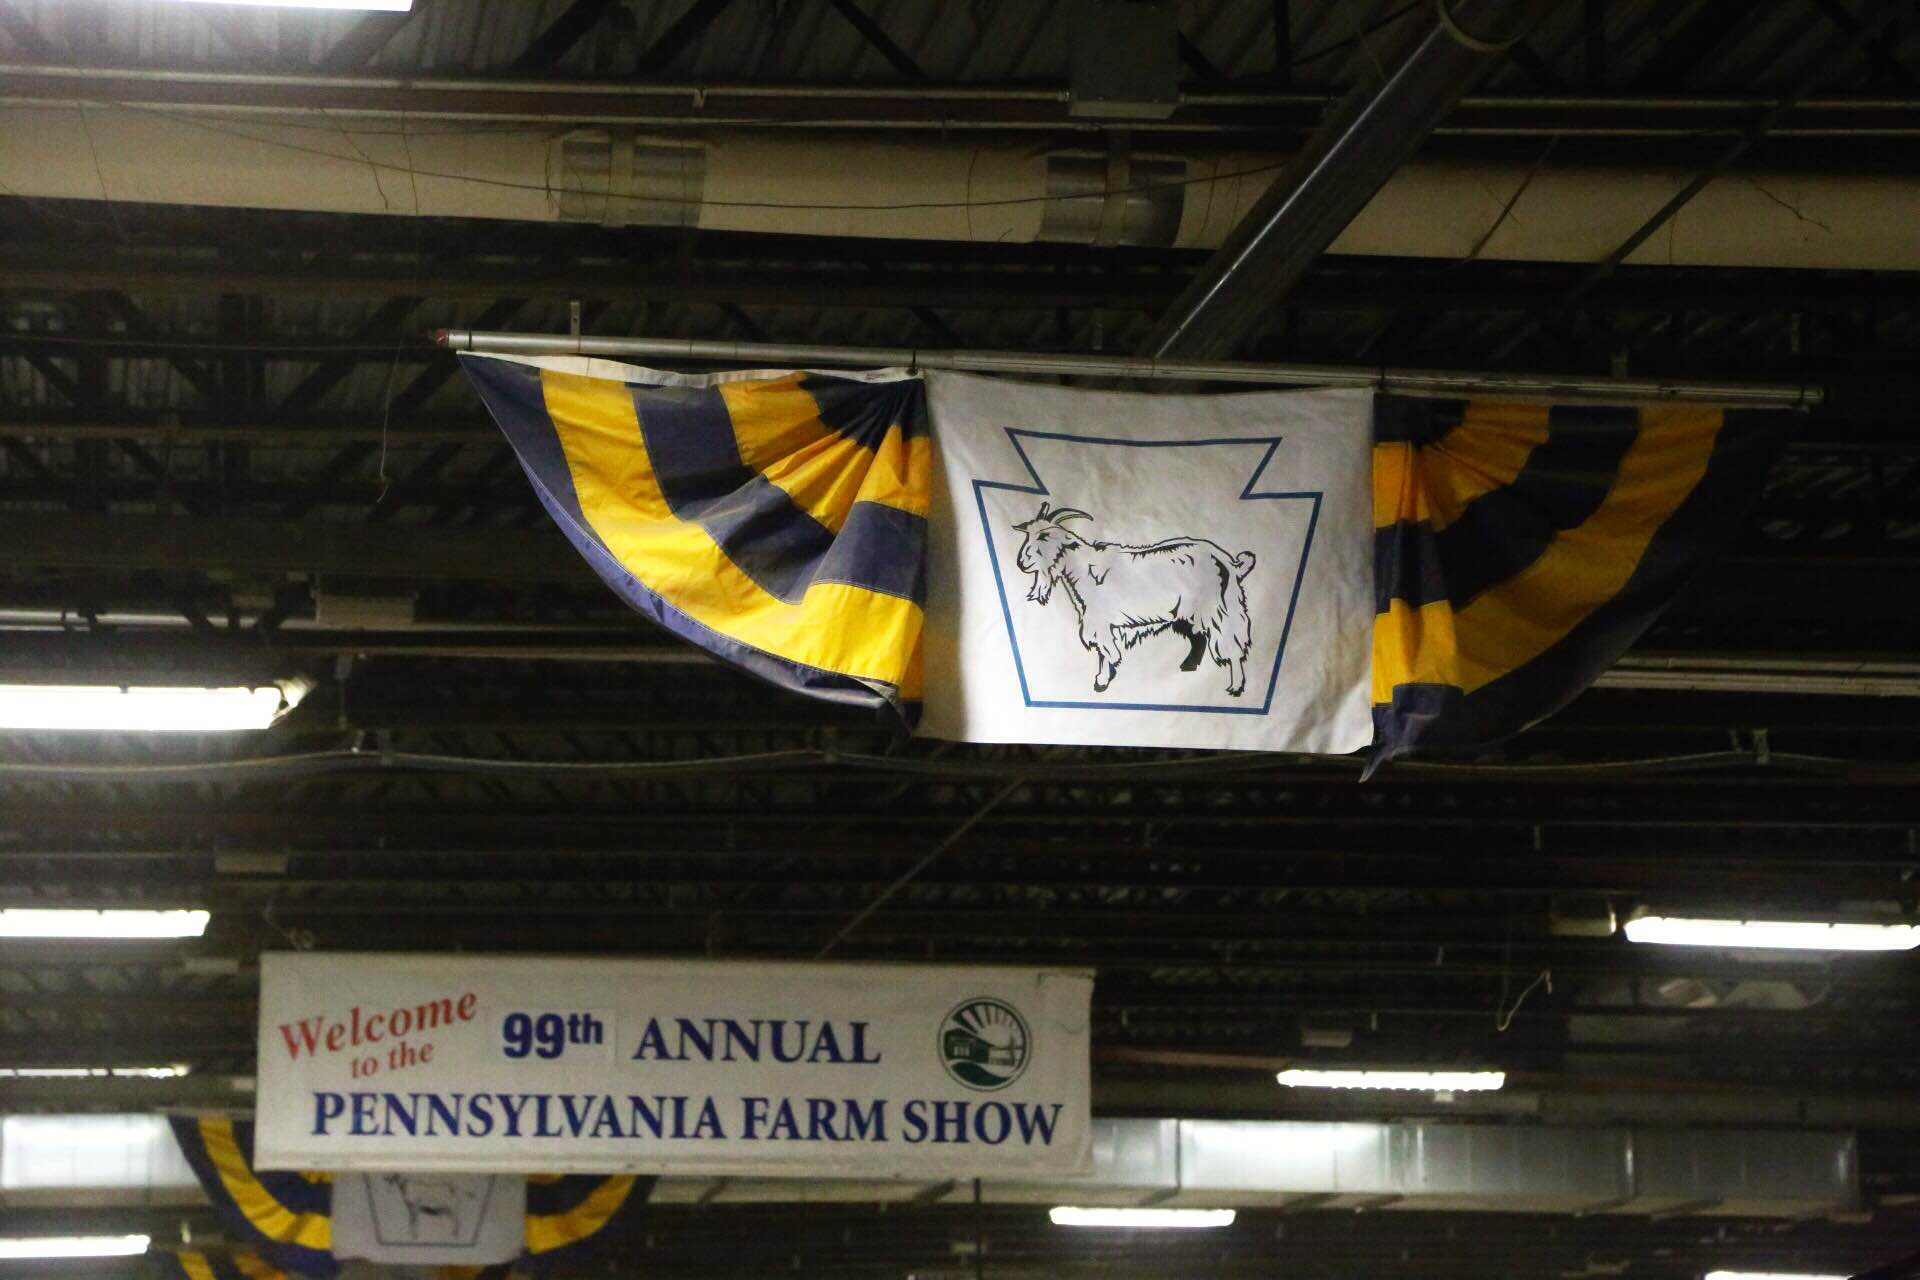 A visit to the PA farm show is a must, even if you just go for the food. Can you guess who loved visiting this section?